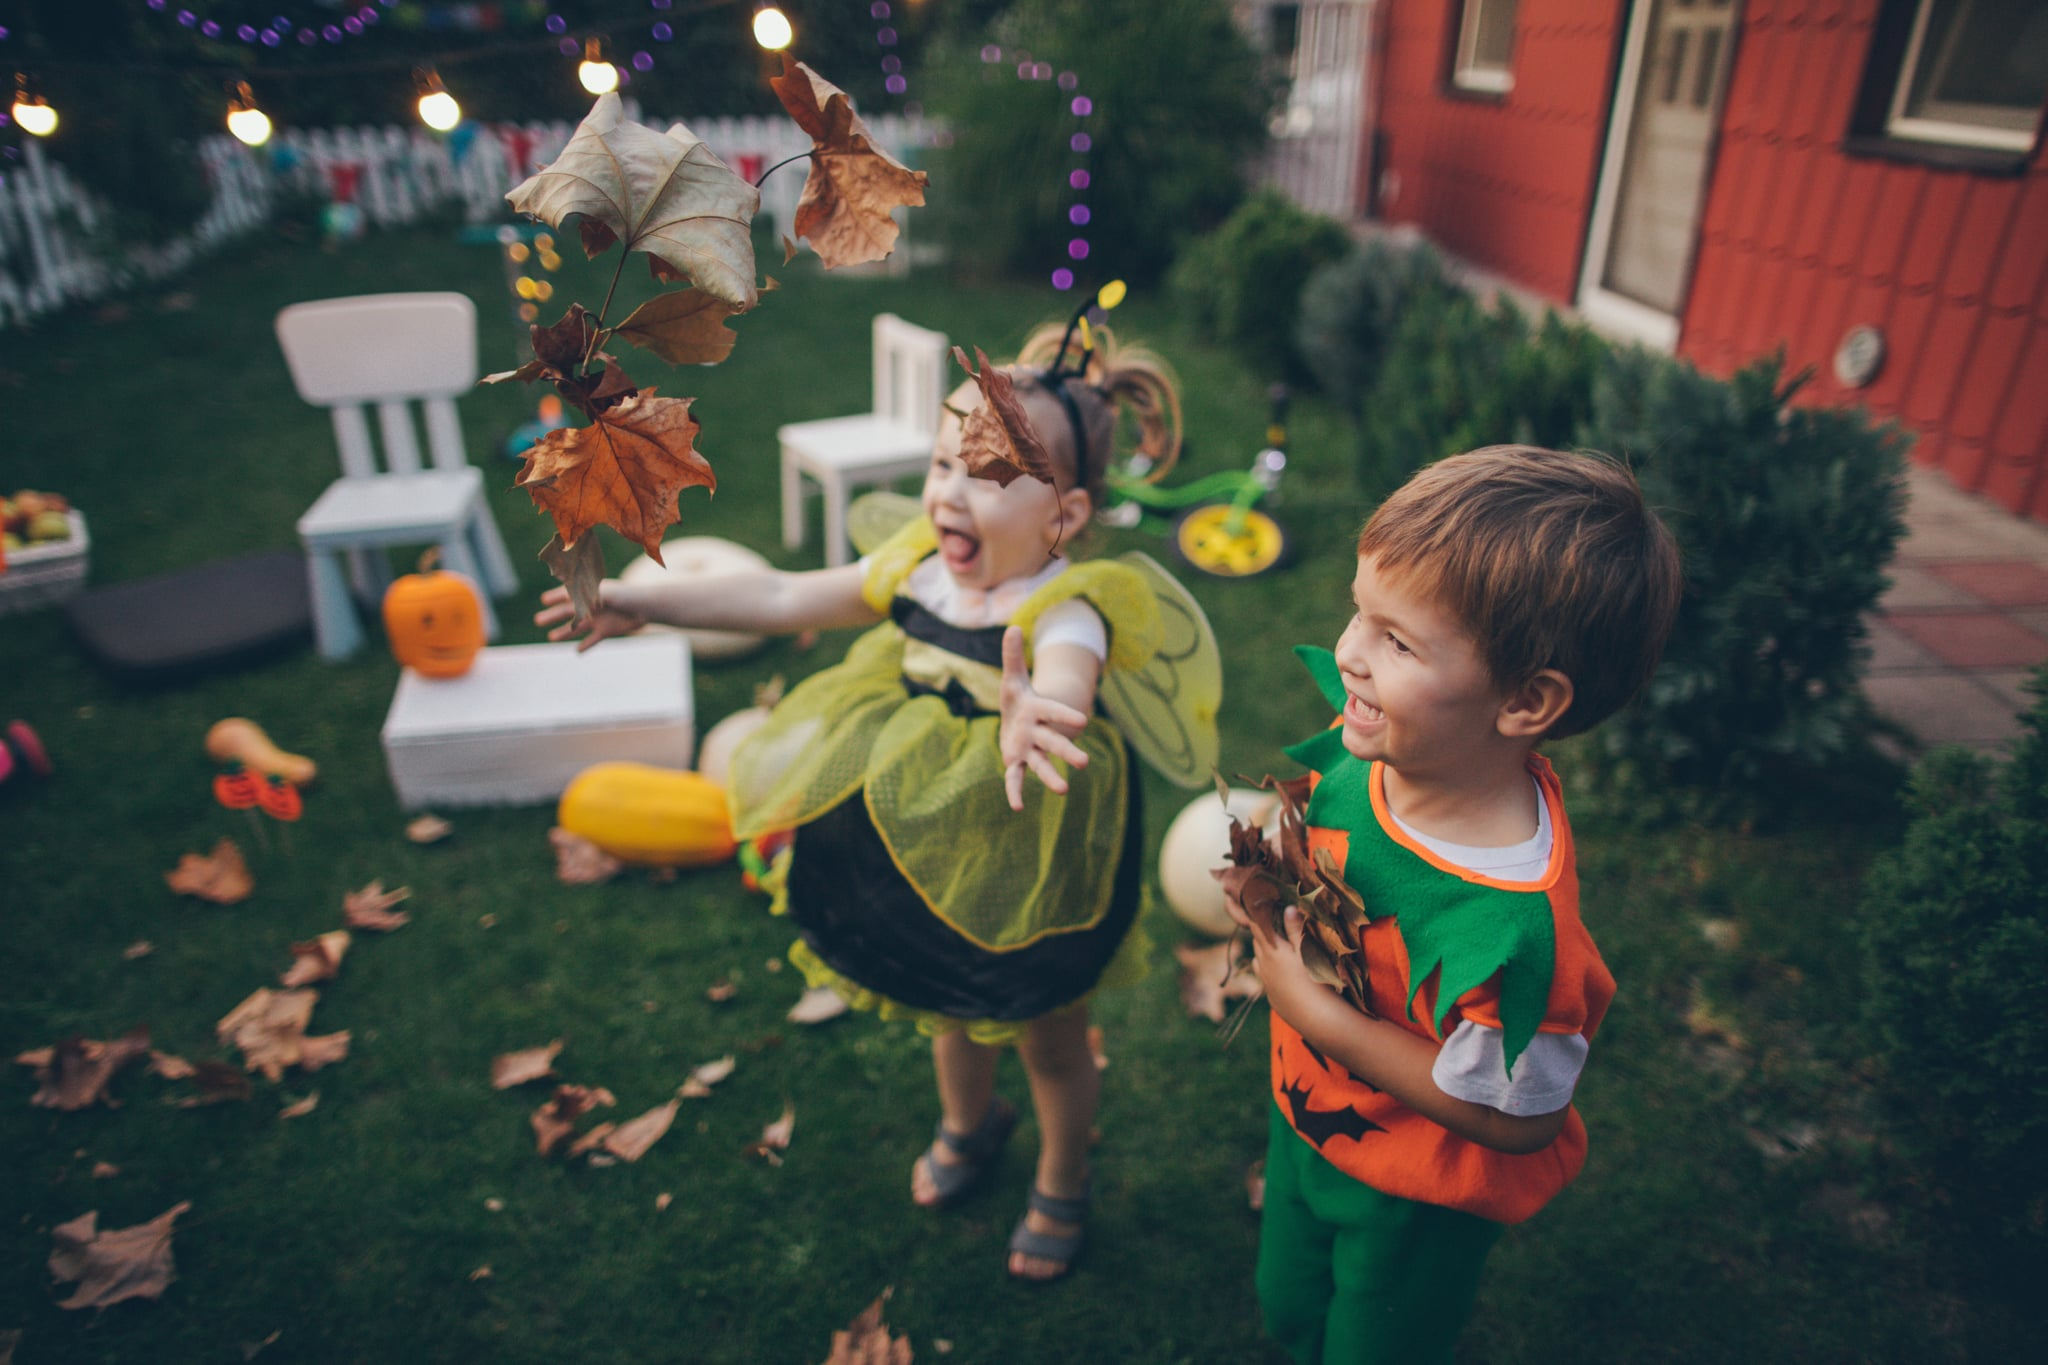 Little boy and little girl having fun in the backyard during the Halloween